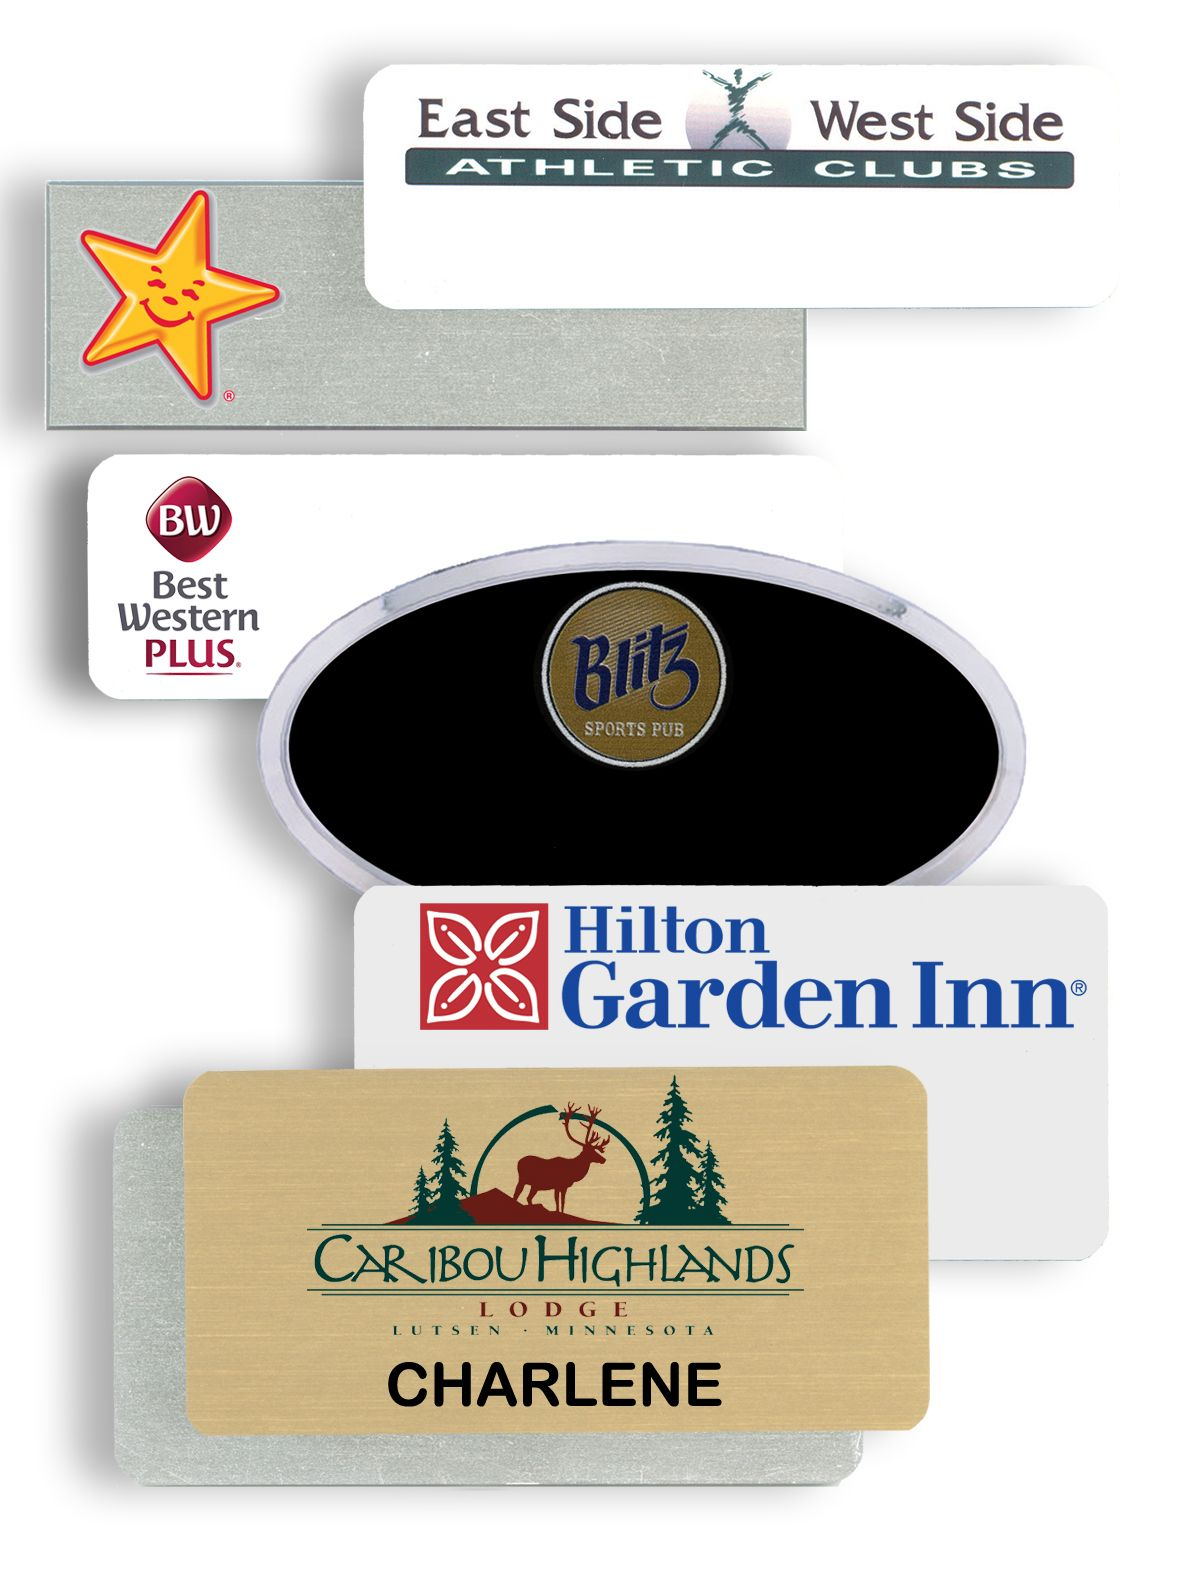 plastic name tags and plastic name badges contribute to corporate